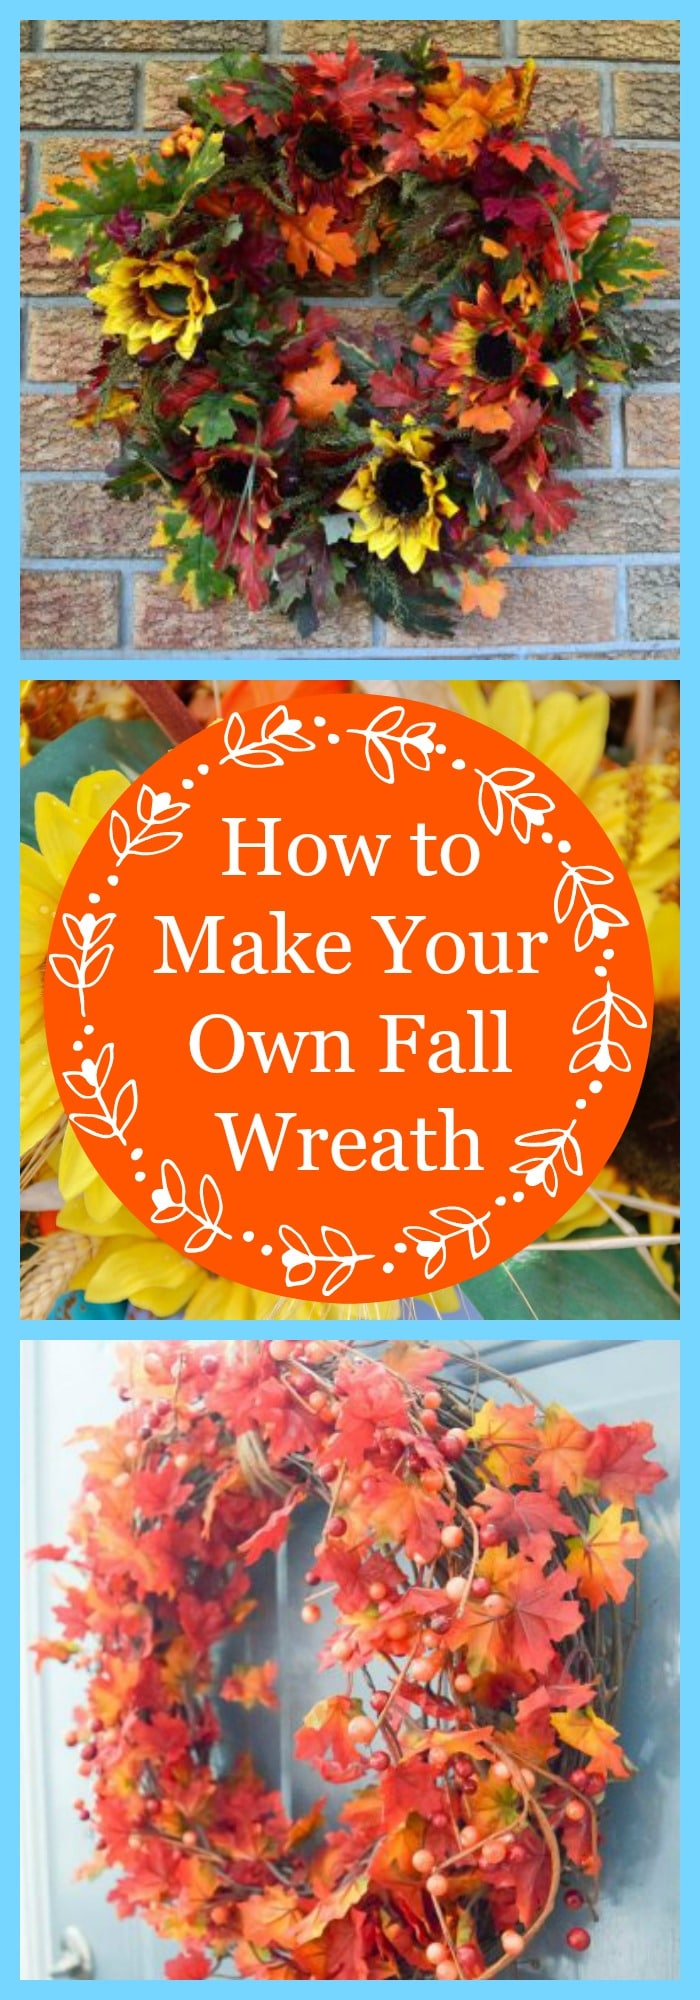 How to Make Your Own Fall Wreath